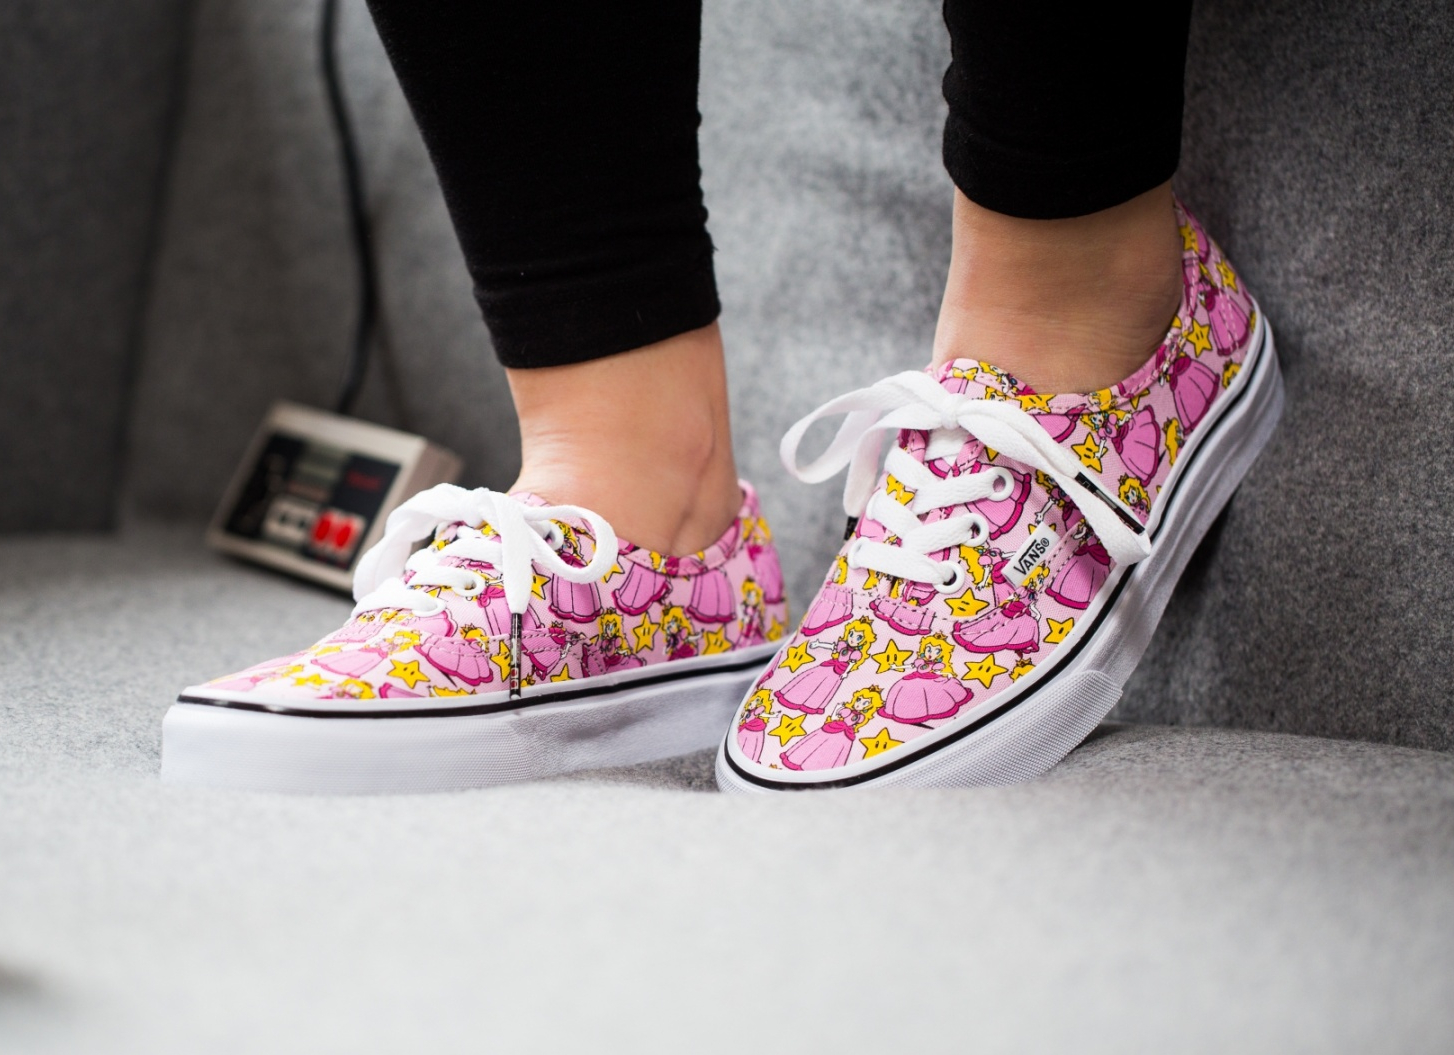 Chaussure Nintendo x Vans Authentic Princesse Peach (3)